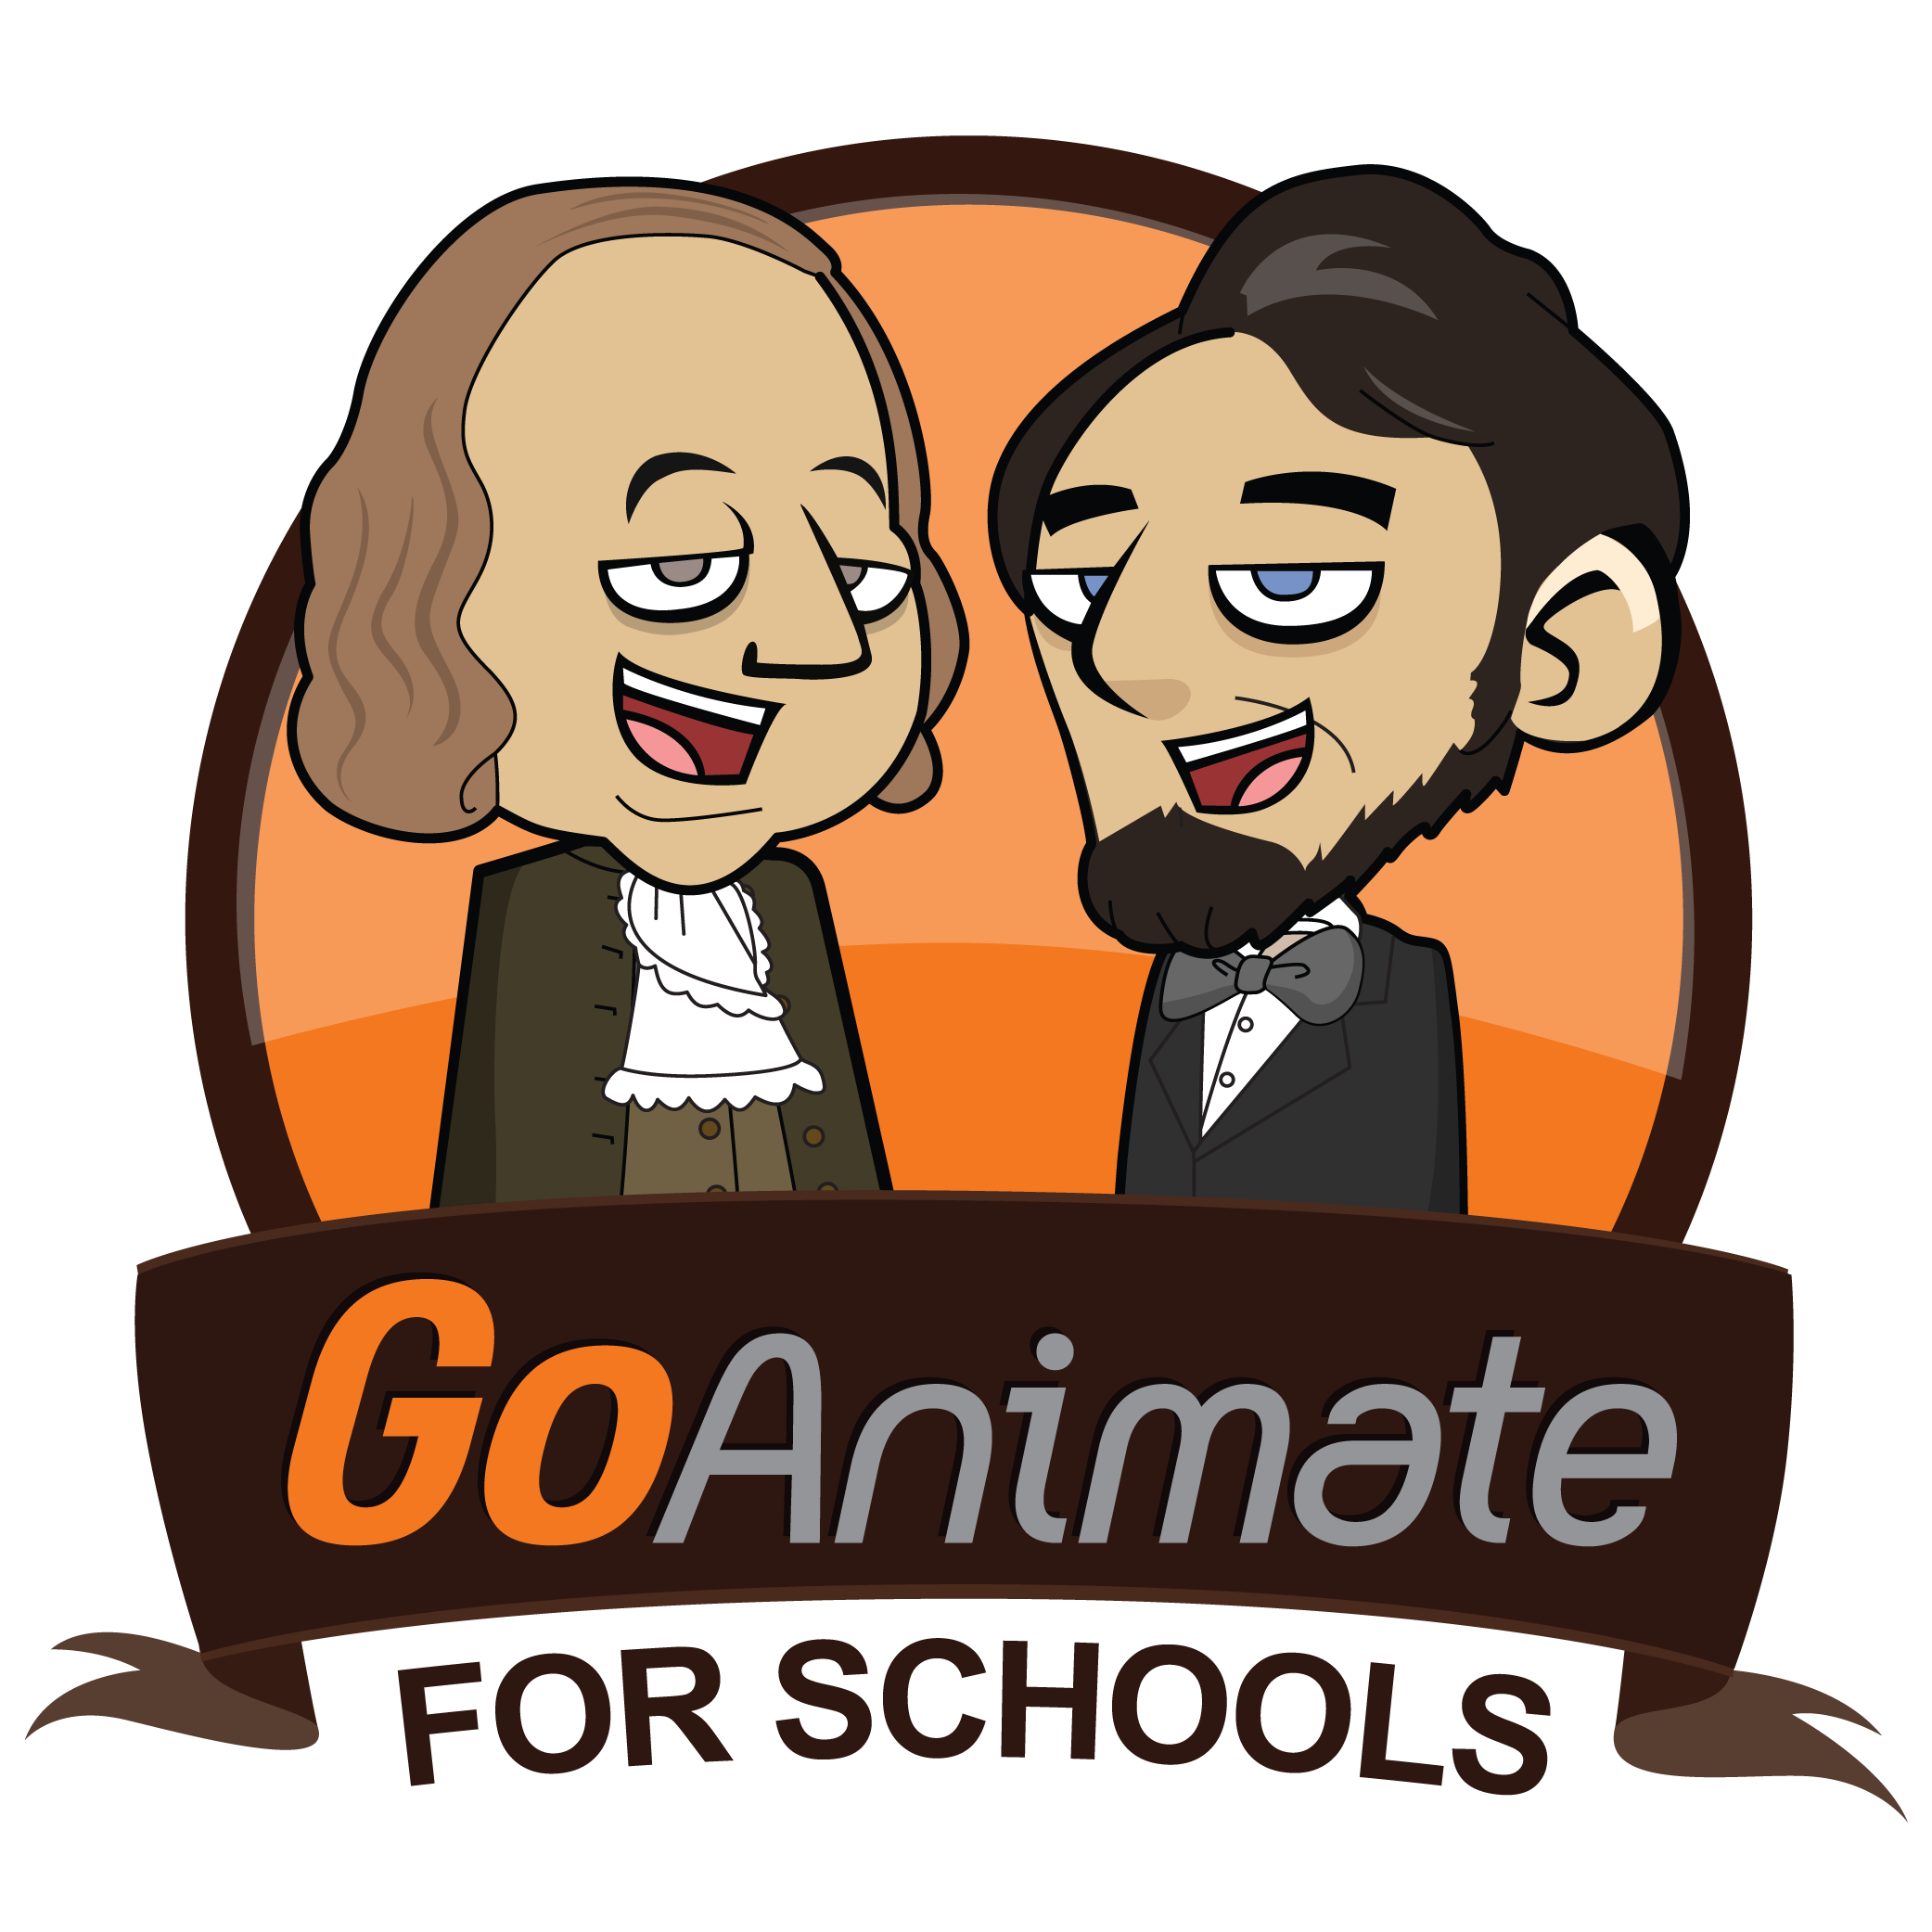 GoAnimate for schools - great safe educational portal for